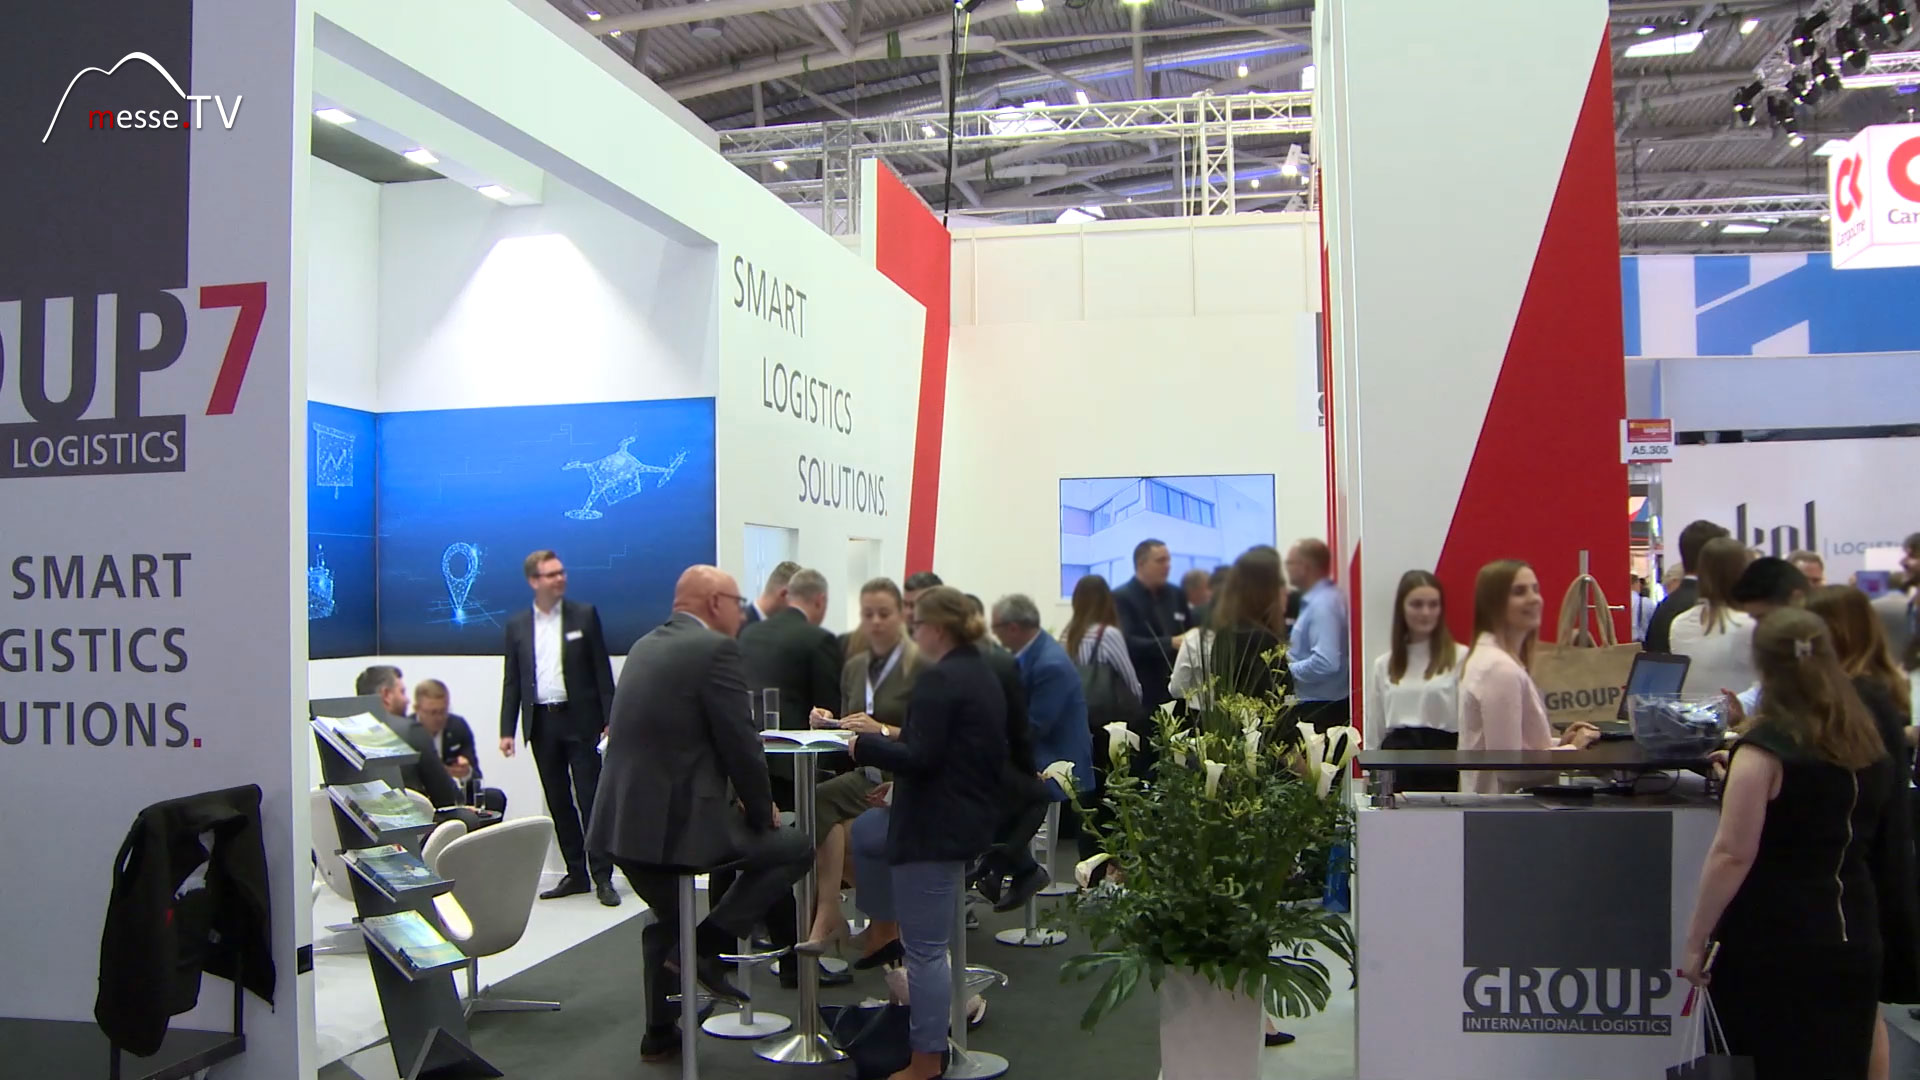 GROUP7 Messestand transport logistic 2019 Messe München